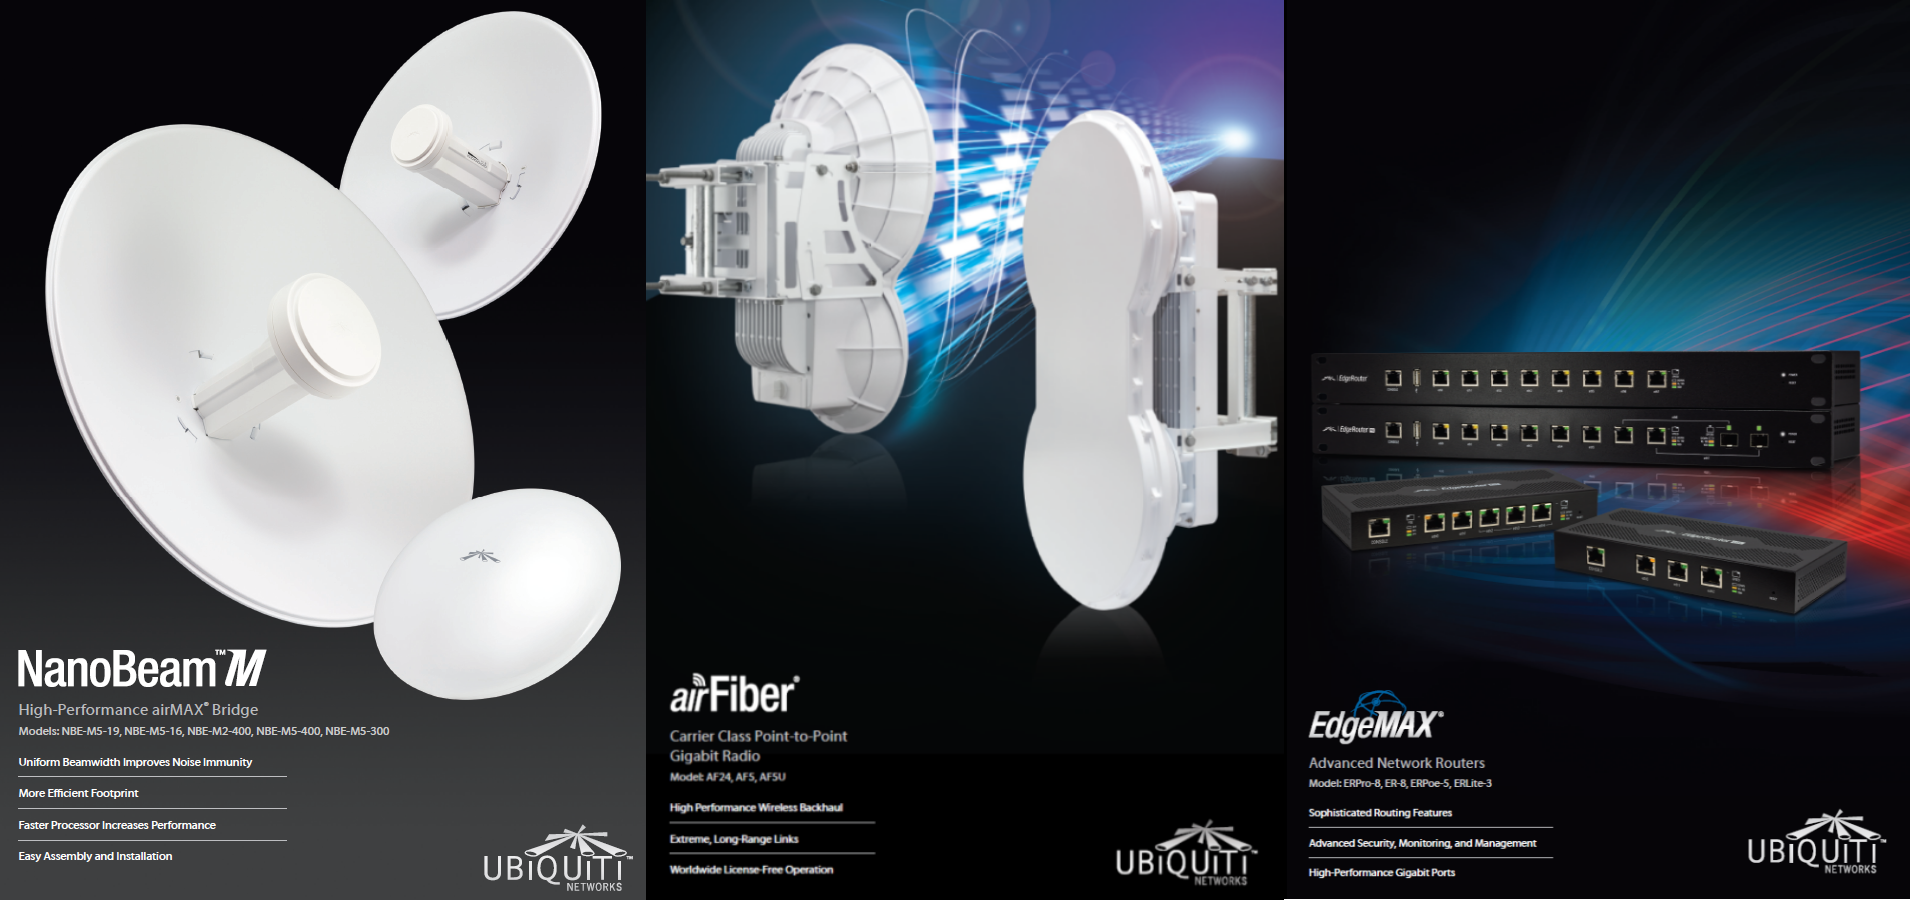 Wireless Internet Service Provider >> Ubiquiti Networks Introduces Next-Gen Fixed Wireless ...